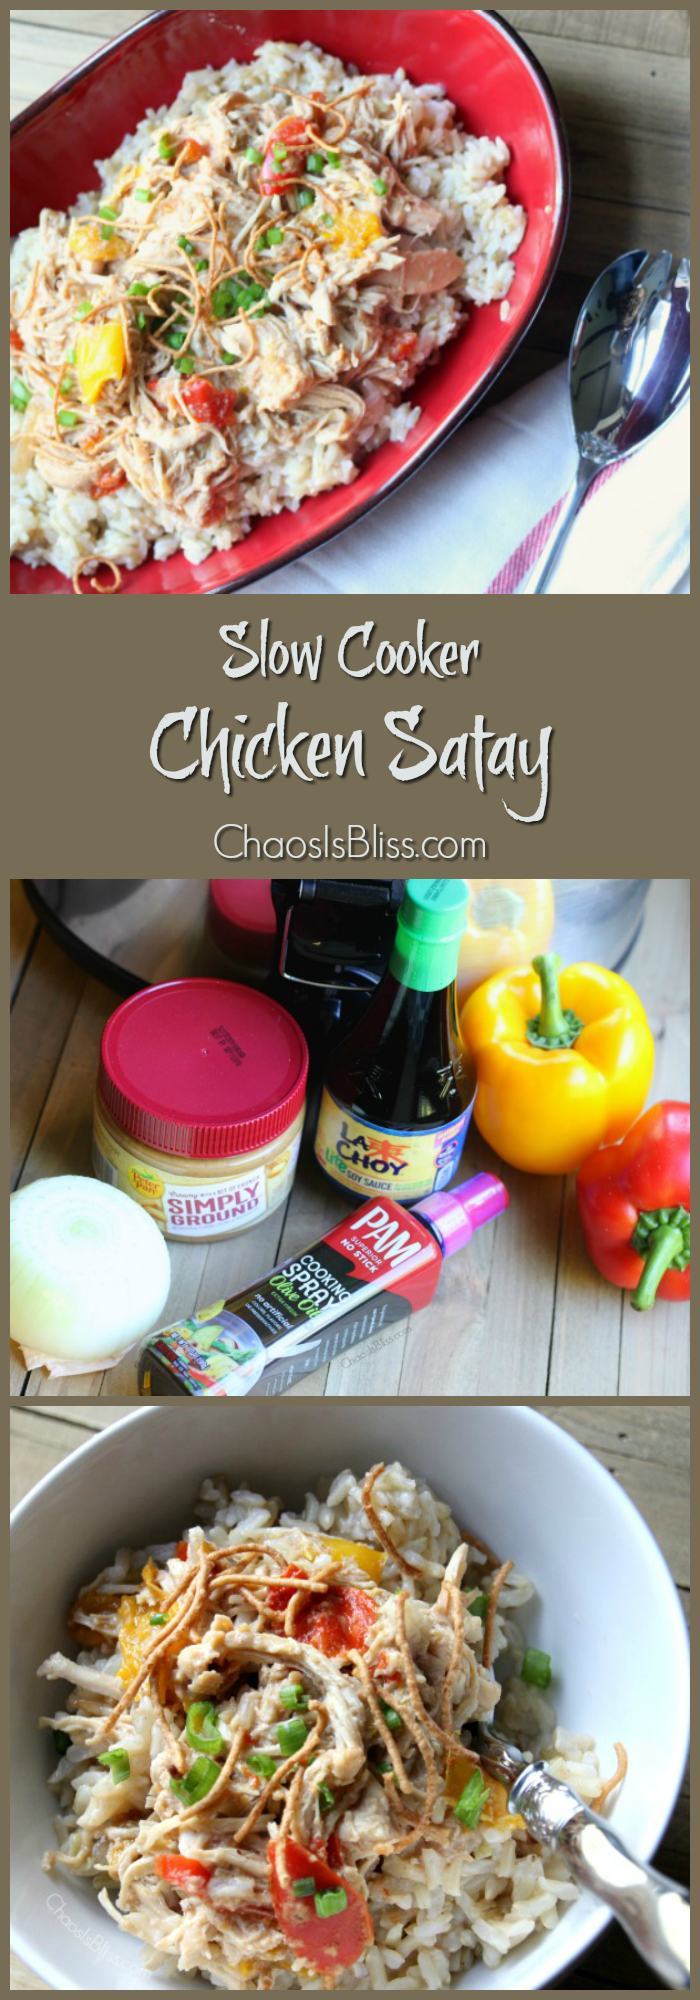 Here's an easy and mild slow cooker chicken satay recipe that adds just the right heat without being too spicy!